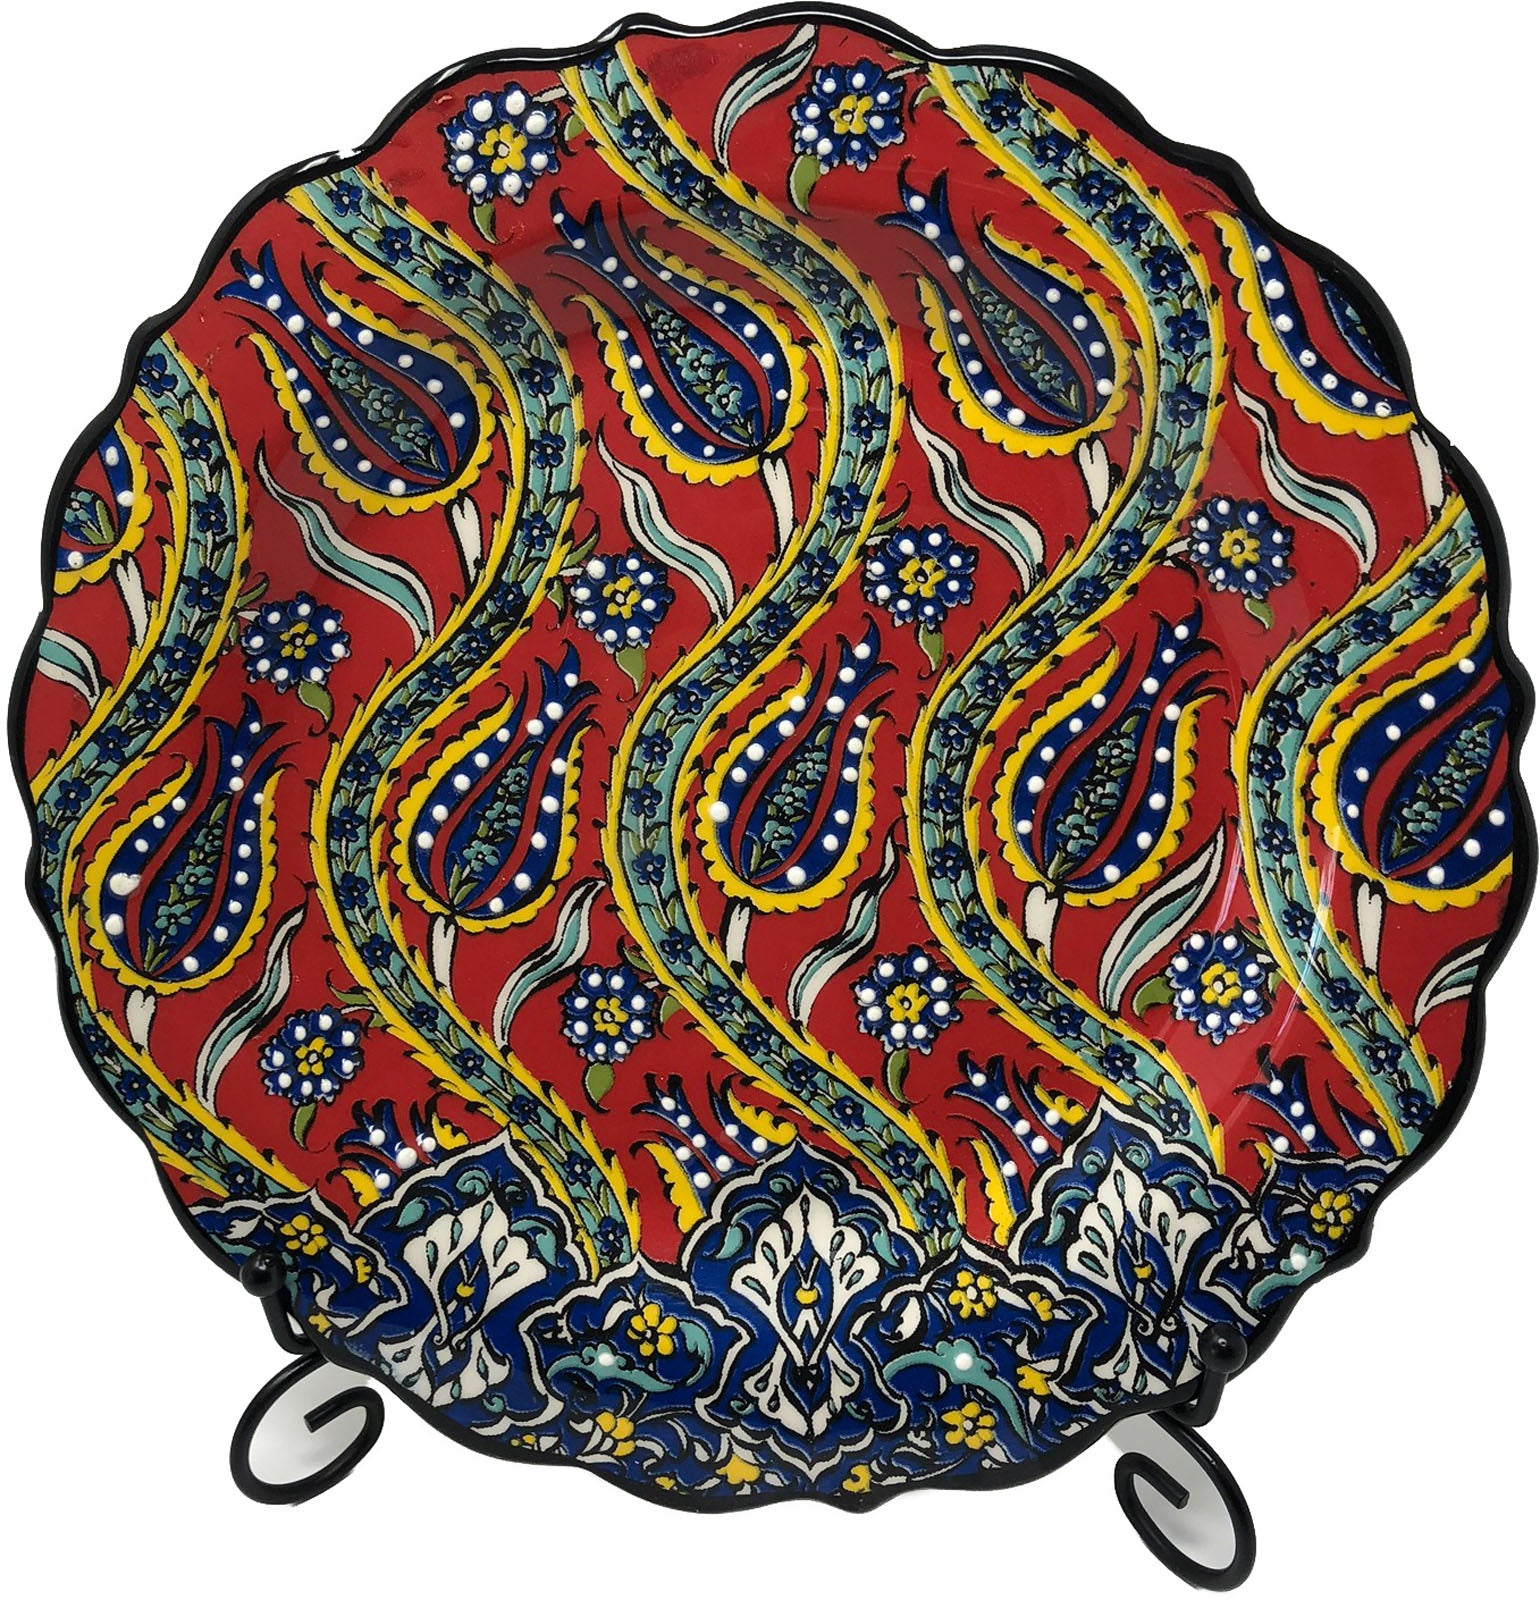 Special Collection Handmade Ceramic 25cm Plate 004